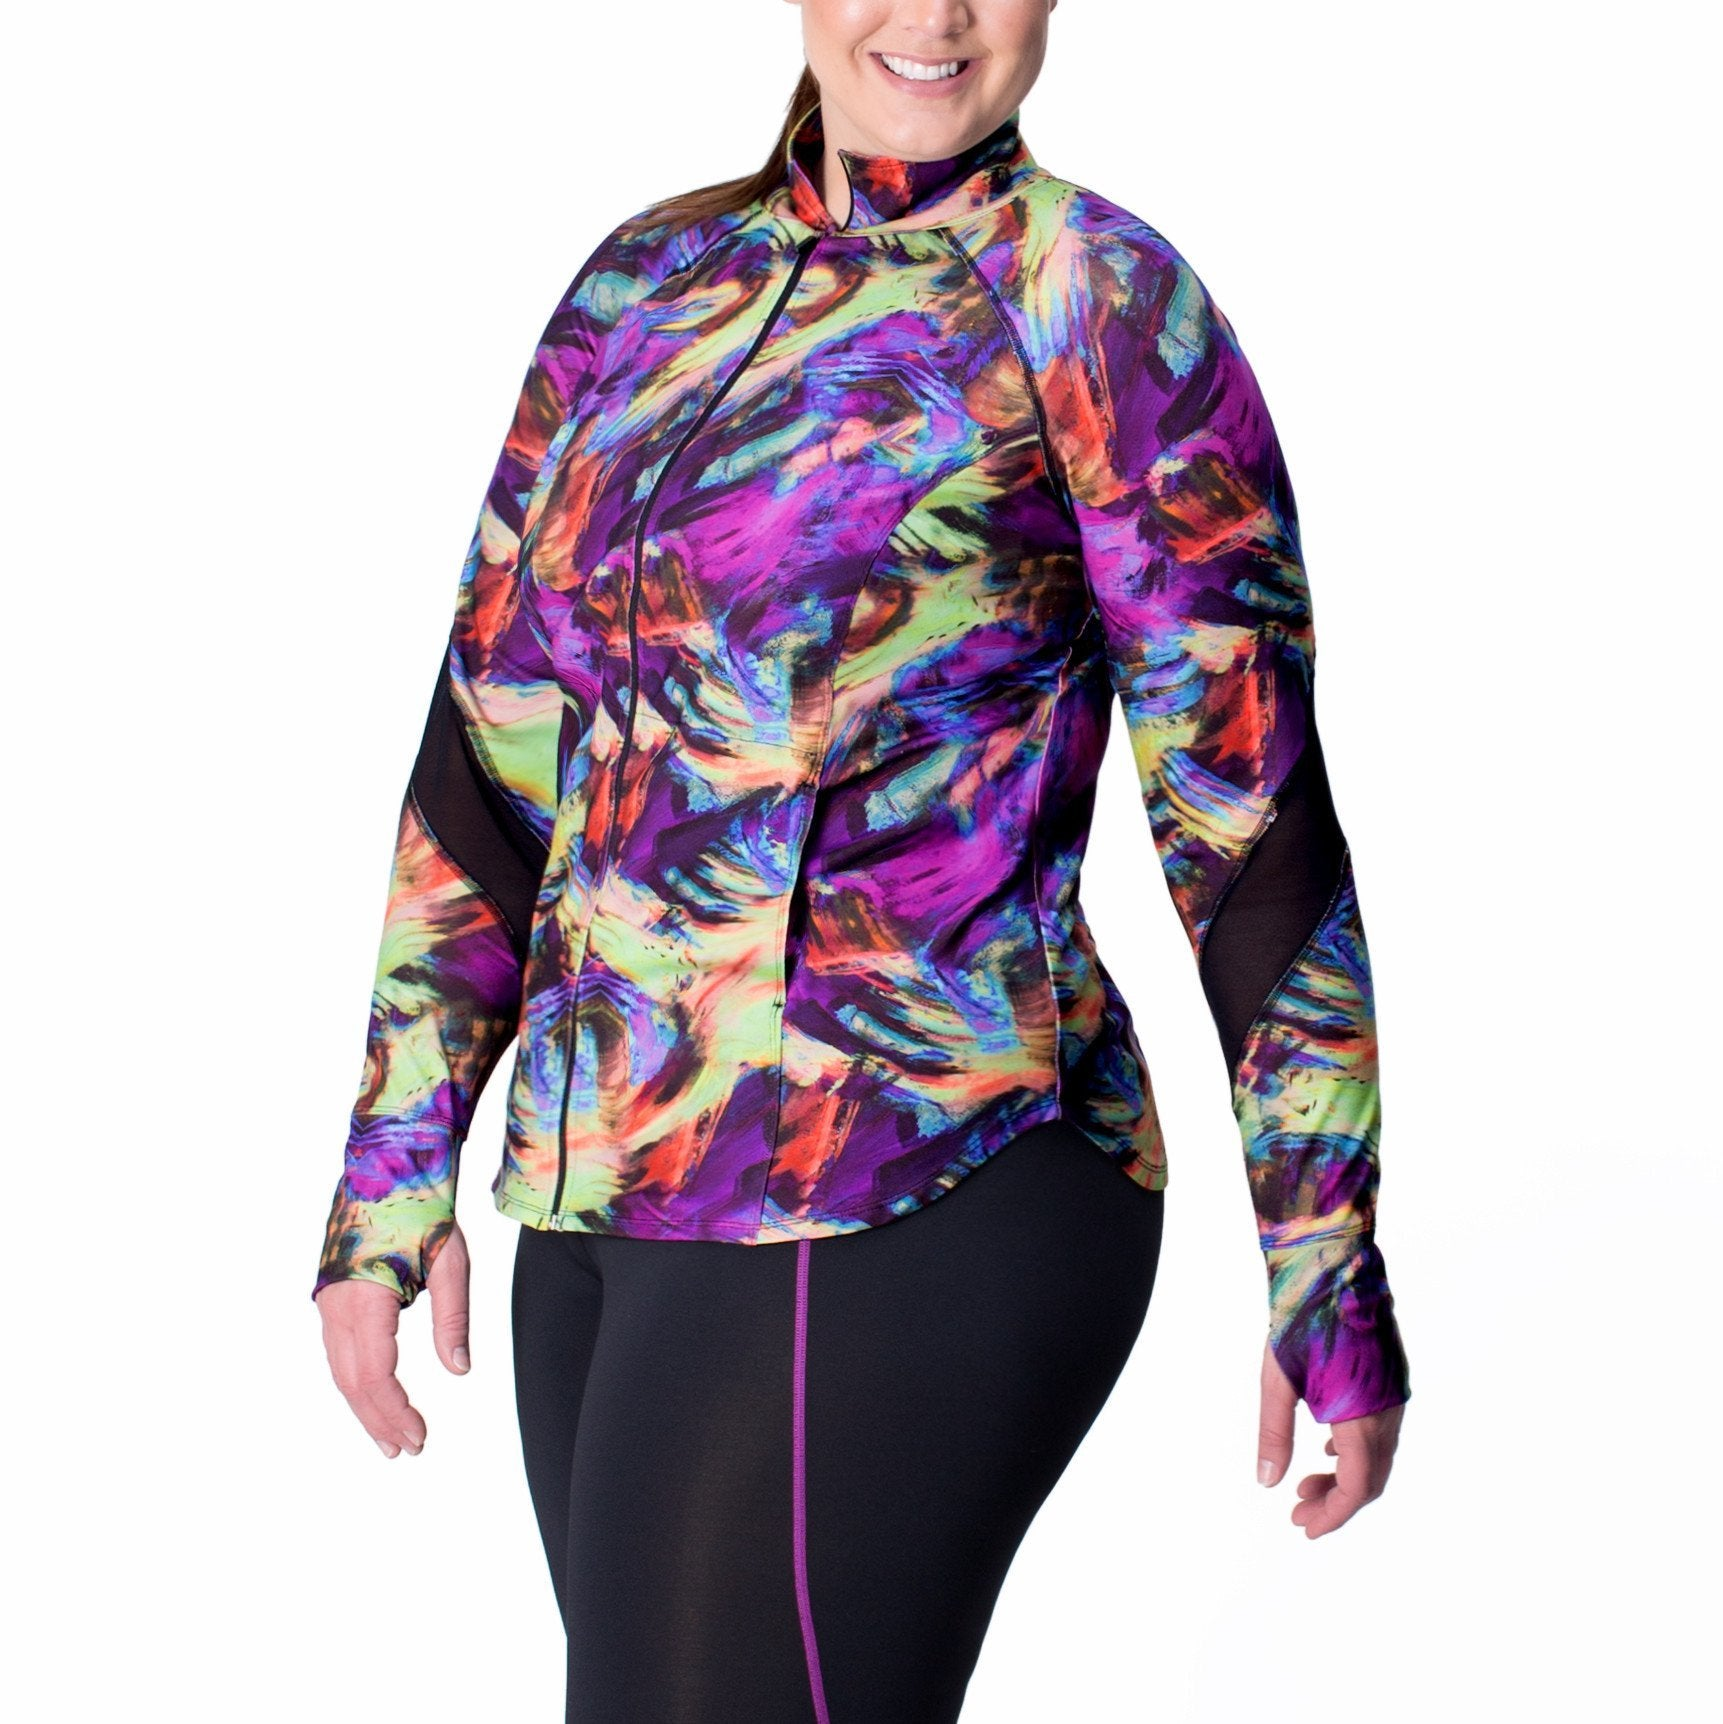 Angela Print Zip-Up Jacket - Rainbeau Curves, 14/16 / Swift Strokes, activewear, athleisure, fitness, workout, gym, performance, womens, ladies, plus size, curvy, full figured, spandex, cotton, polyester - 1